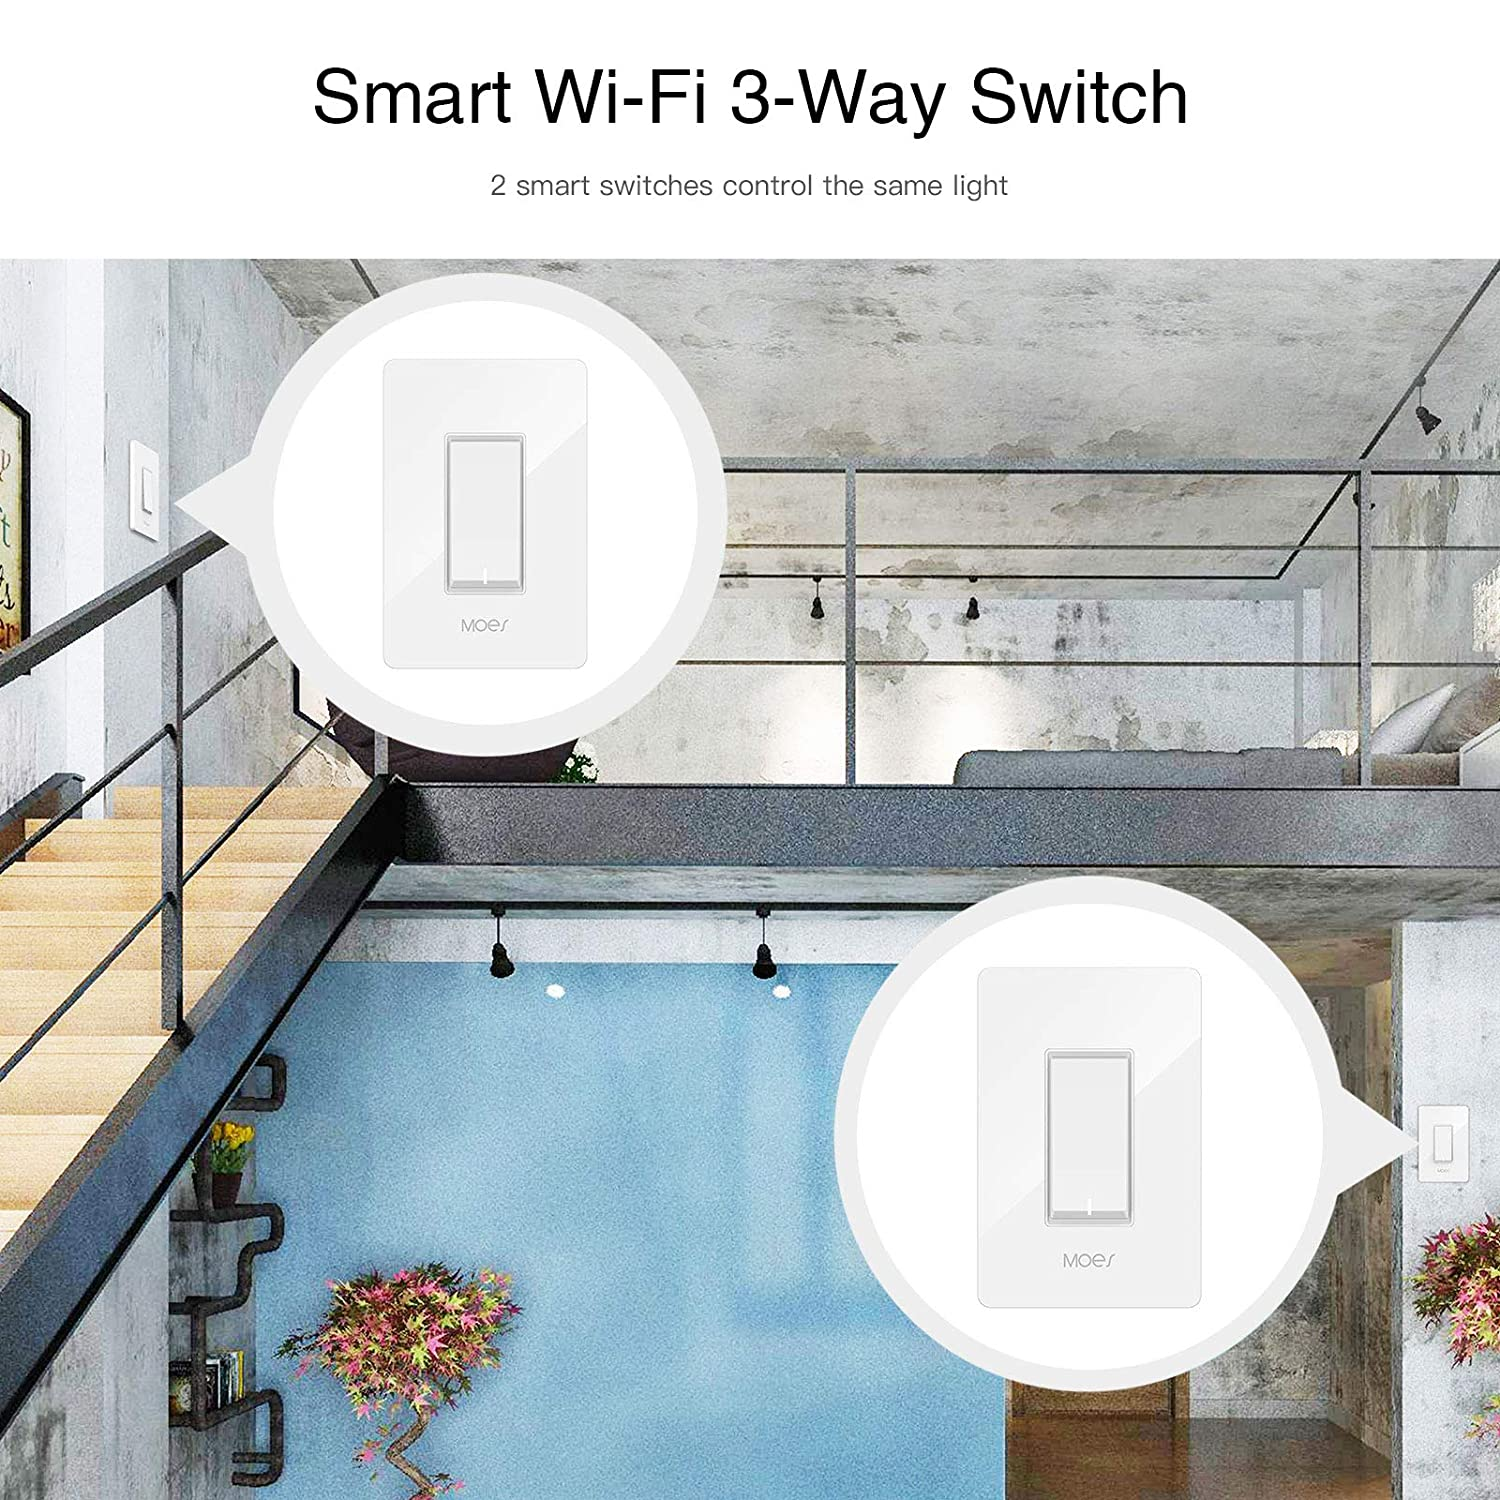 Moes 3 Way Wifi Smart Switch For Light Fan Compatible With Alexa Switching And Neutral As Well Google Home No Hub Required Life App Provides Control From Anywhere